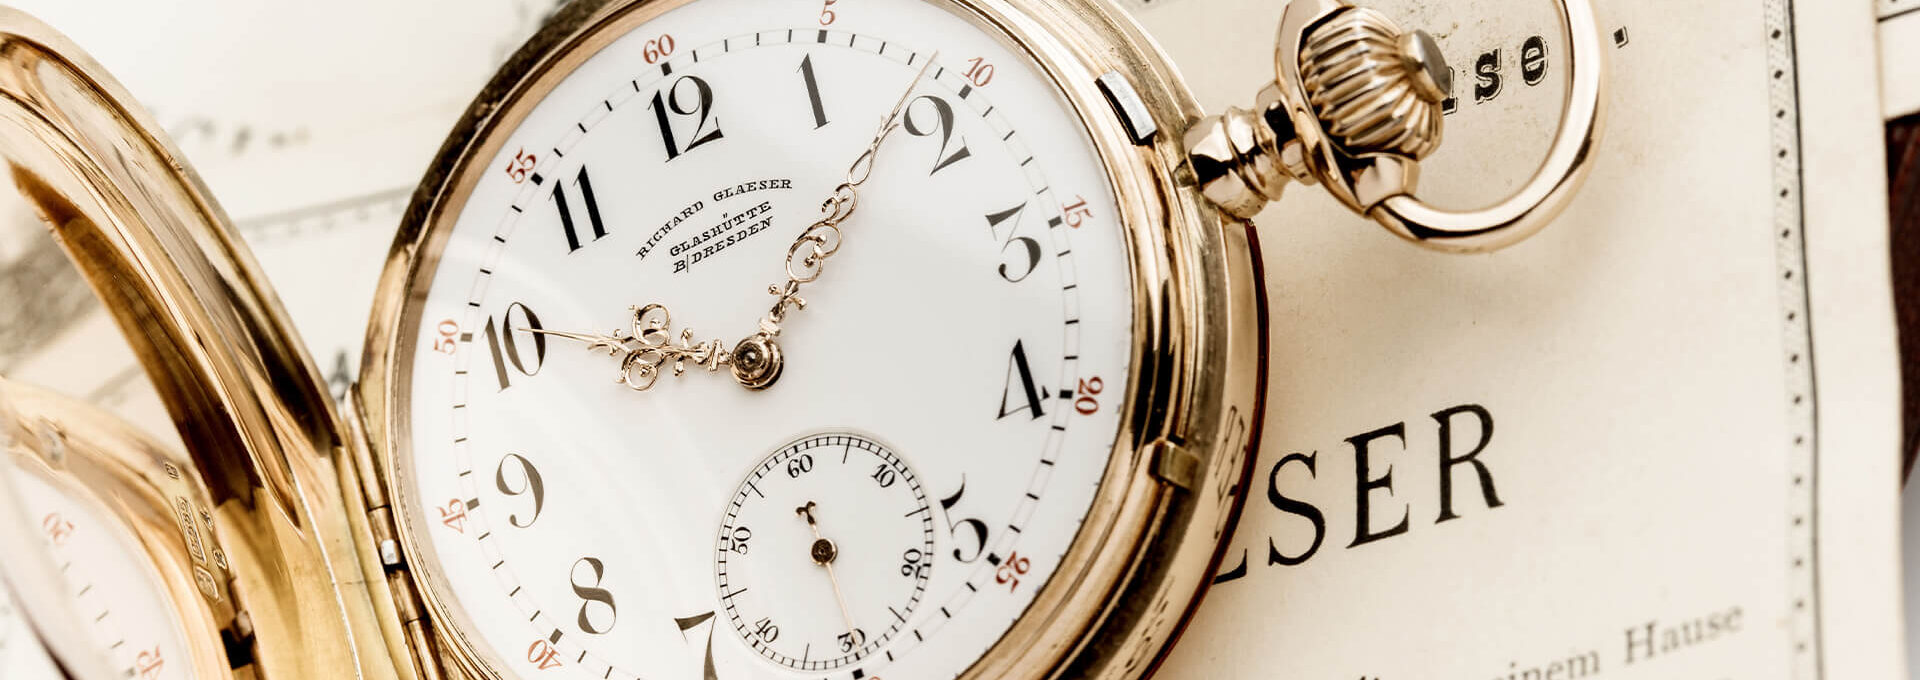 Glashuette_Original-historic_timepieces